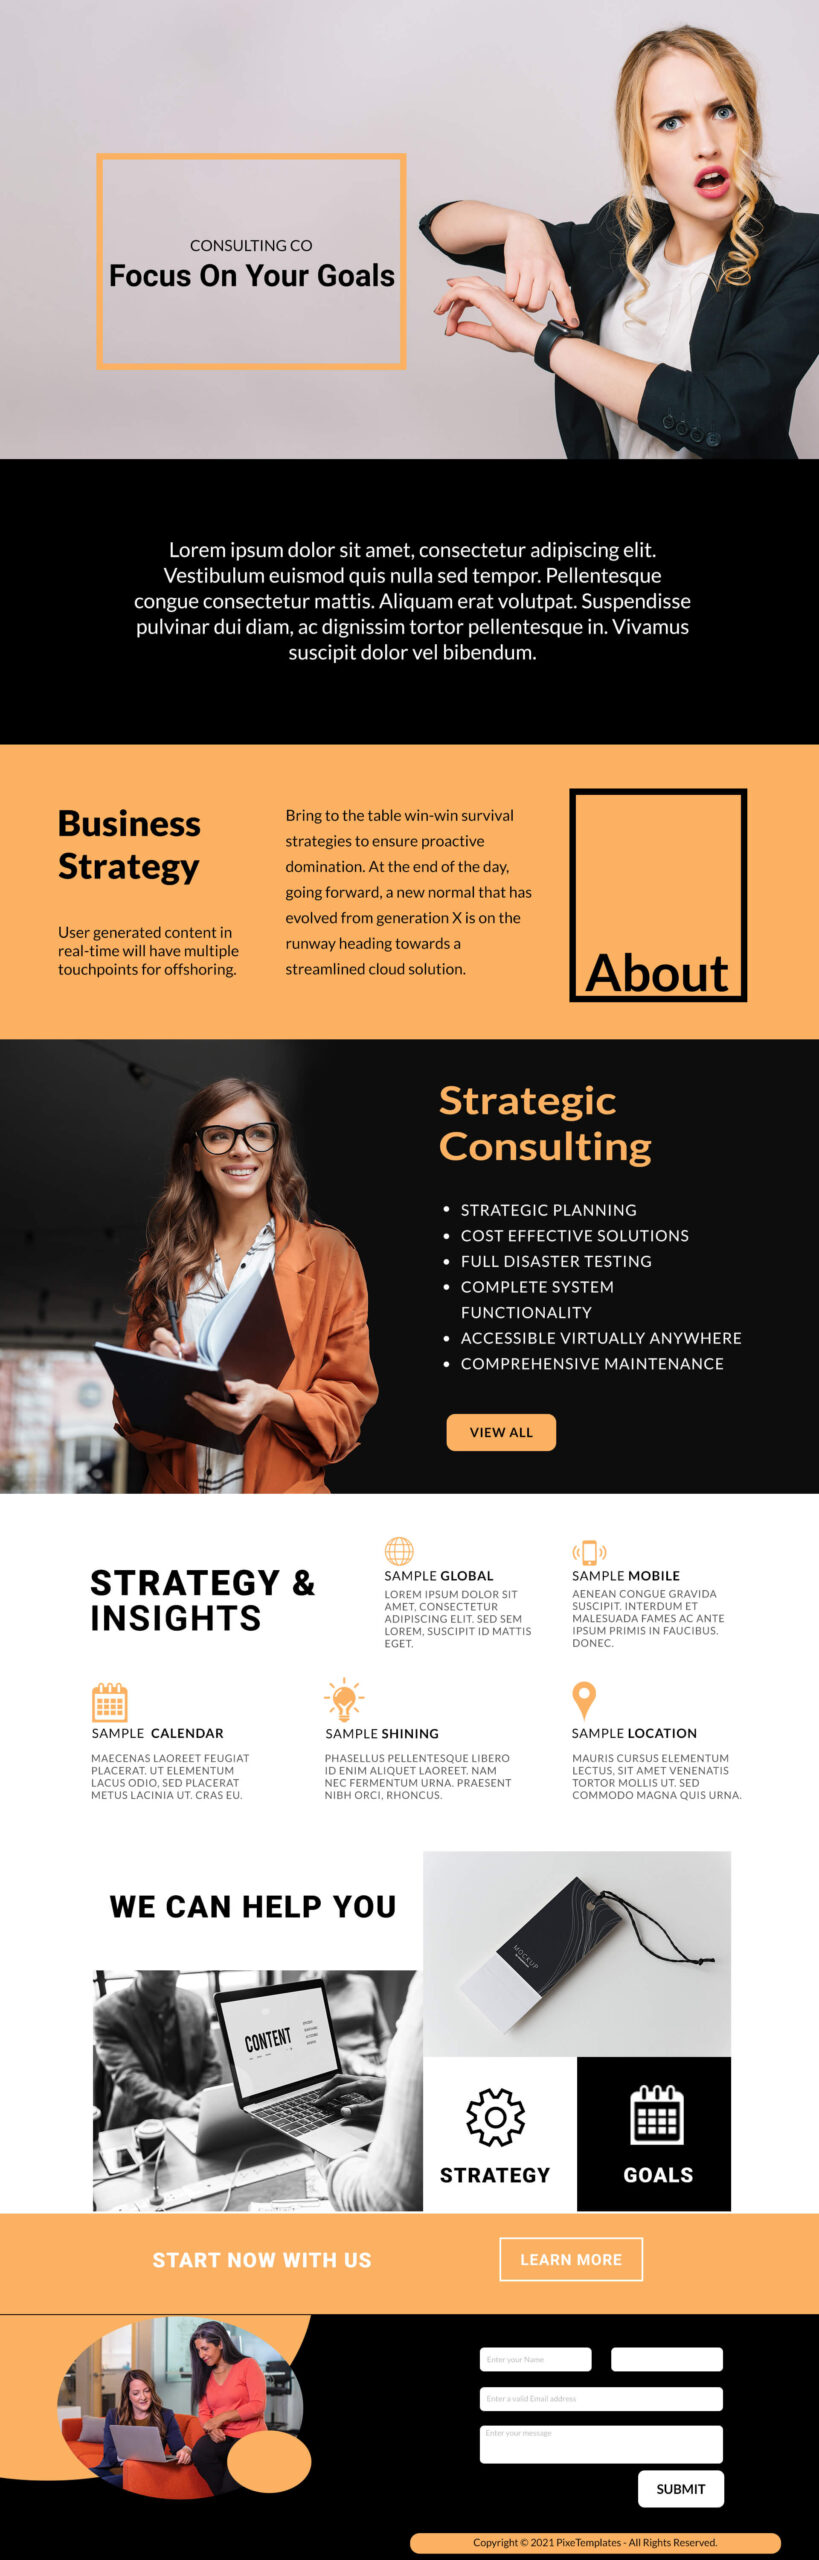 Legal Consulting Firm's Free Website Template with Source PSD